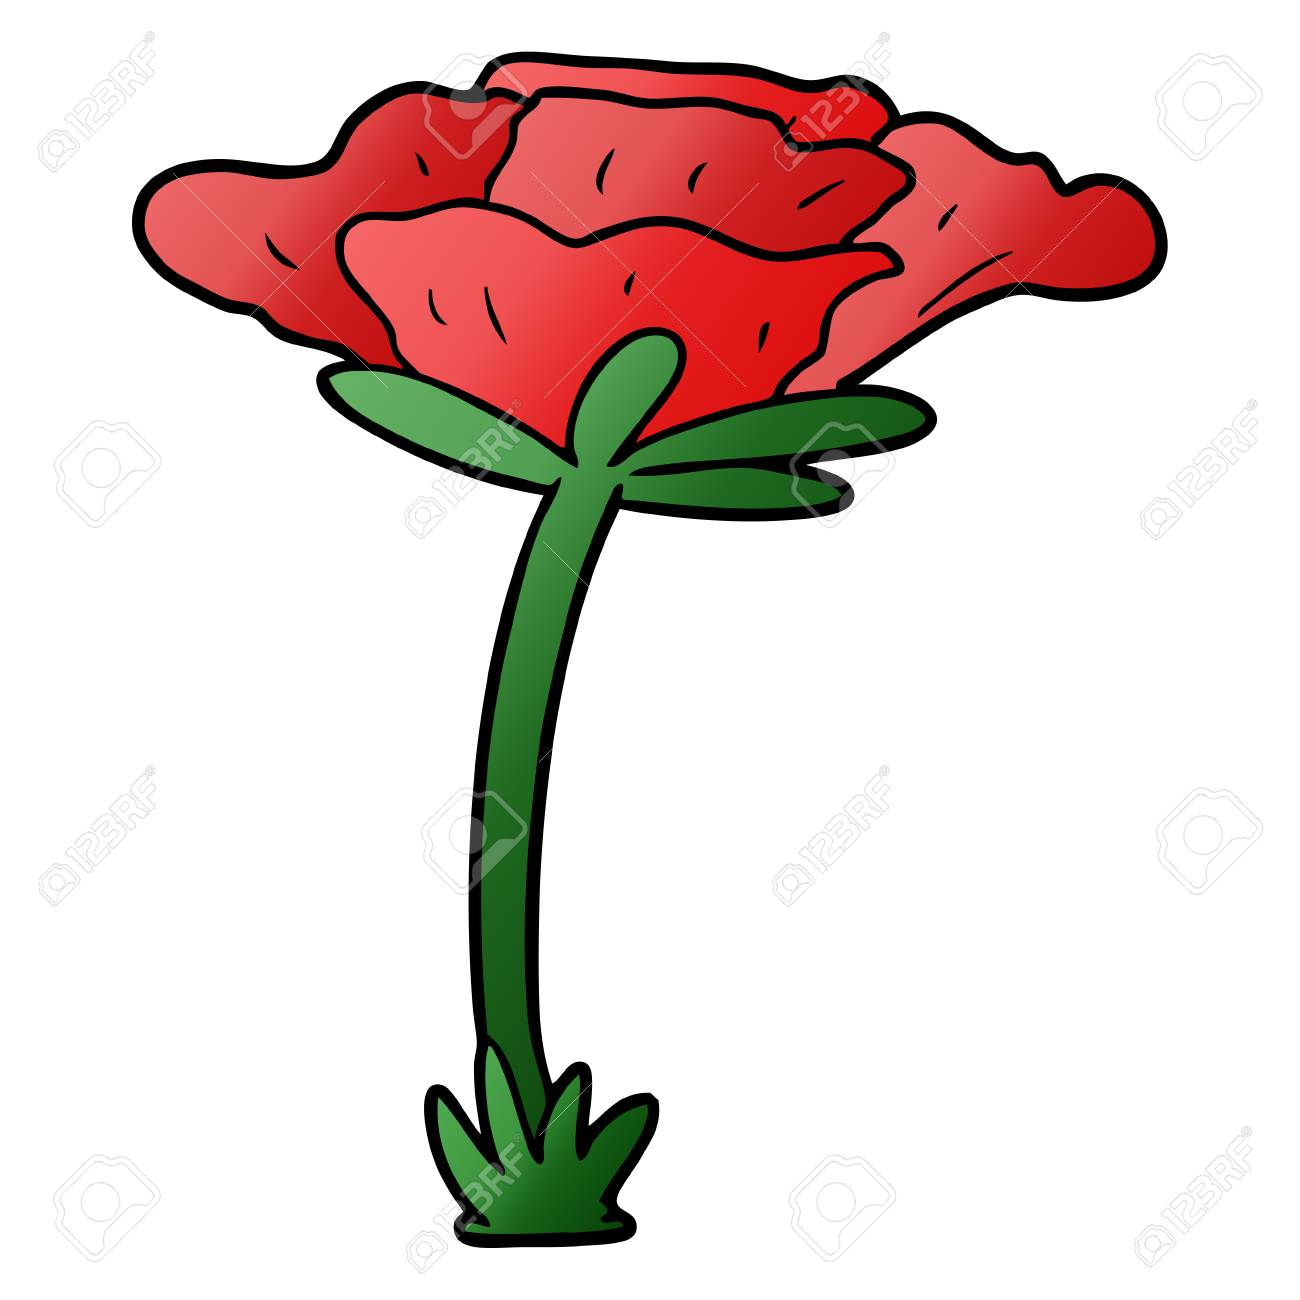 Poppy Flower Plant Cartoon Illustration Royalty Free Cliparts